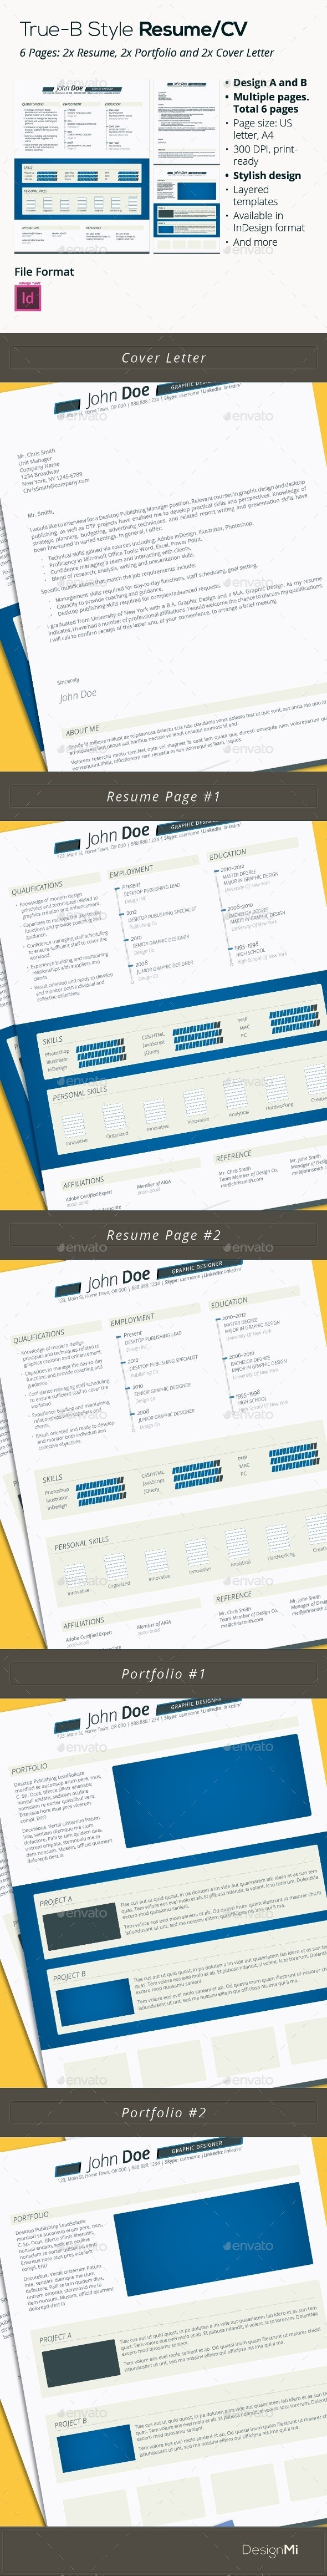 GraphicRiver True B Style Resume CV 6 Pages 9346714